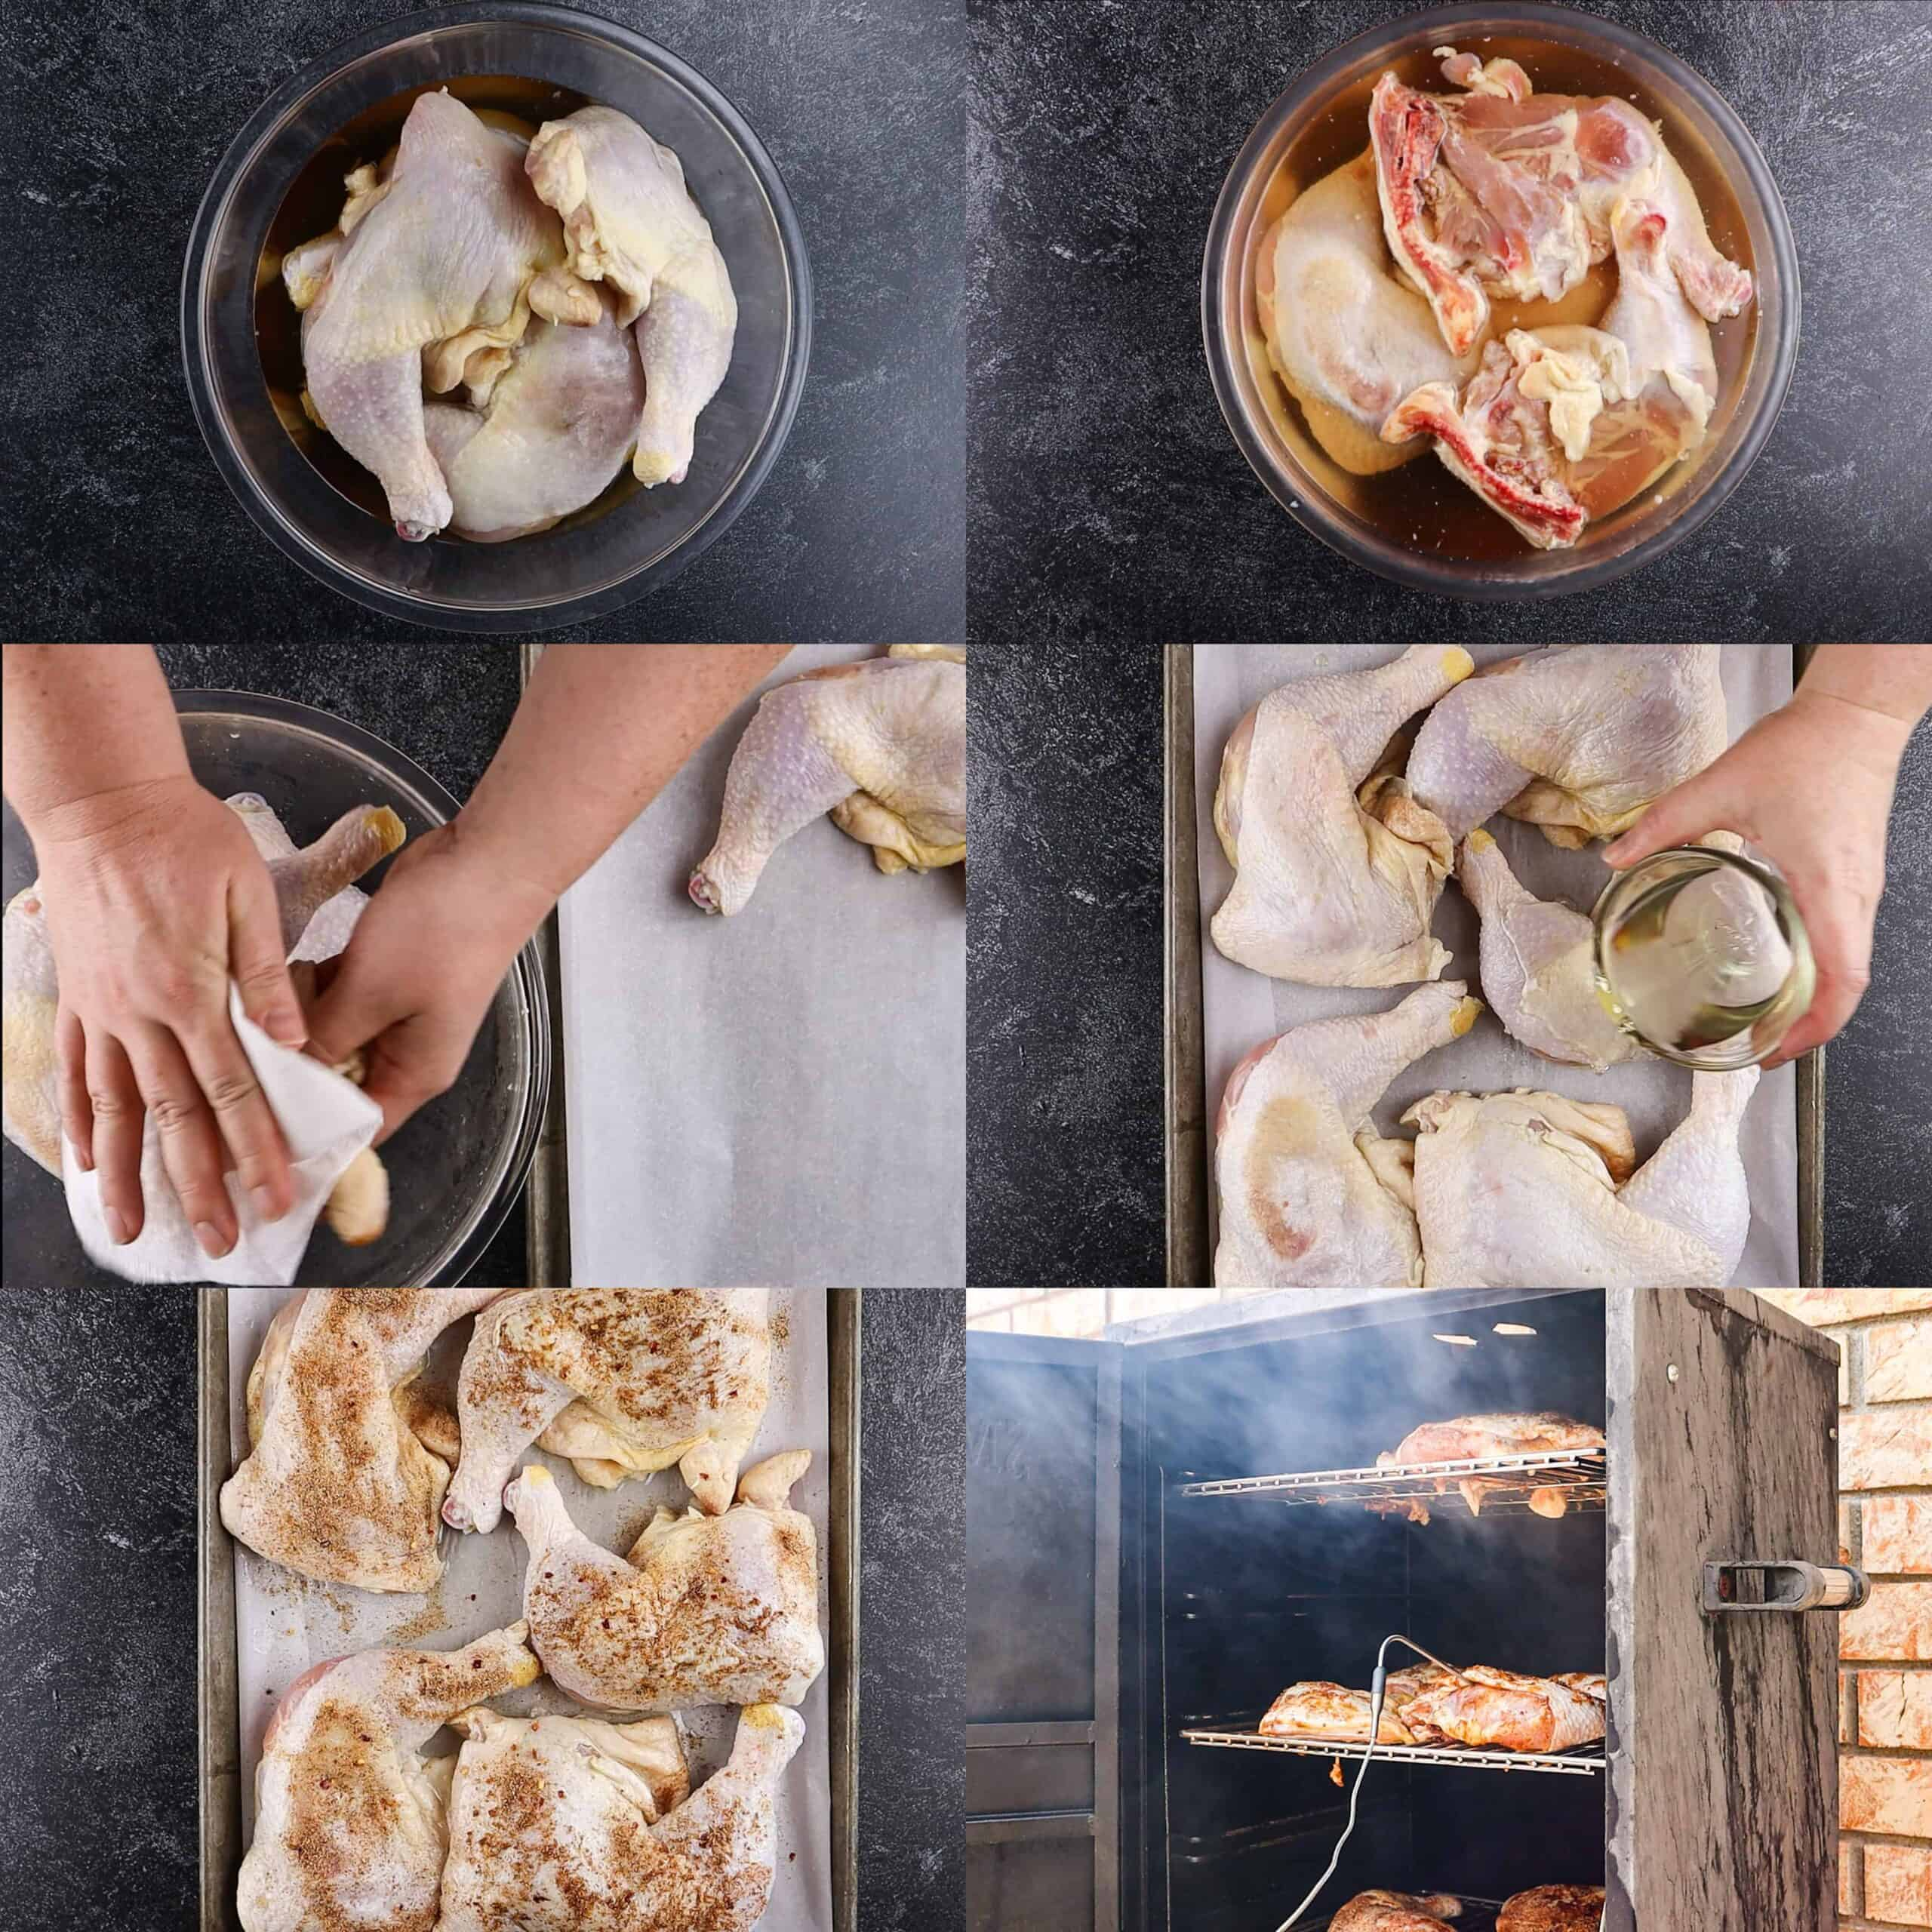 steps for making smoked chicken- brining, dry, oil, season, smoke